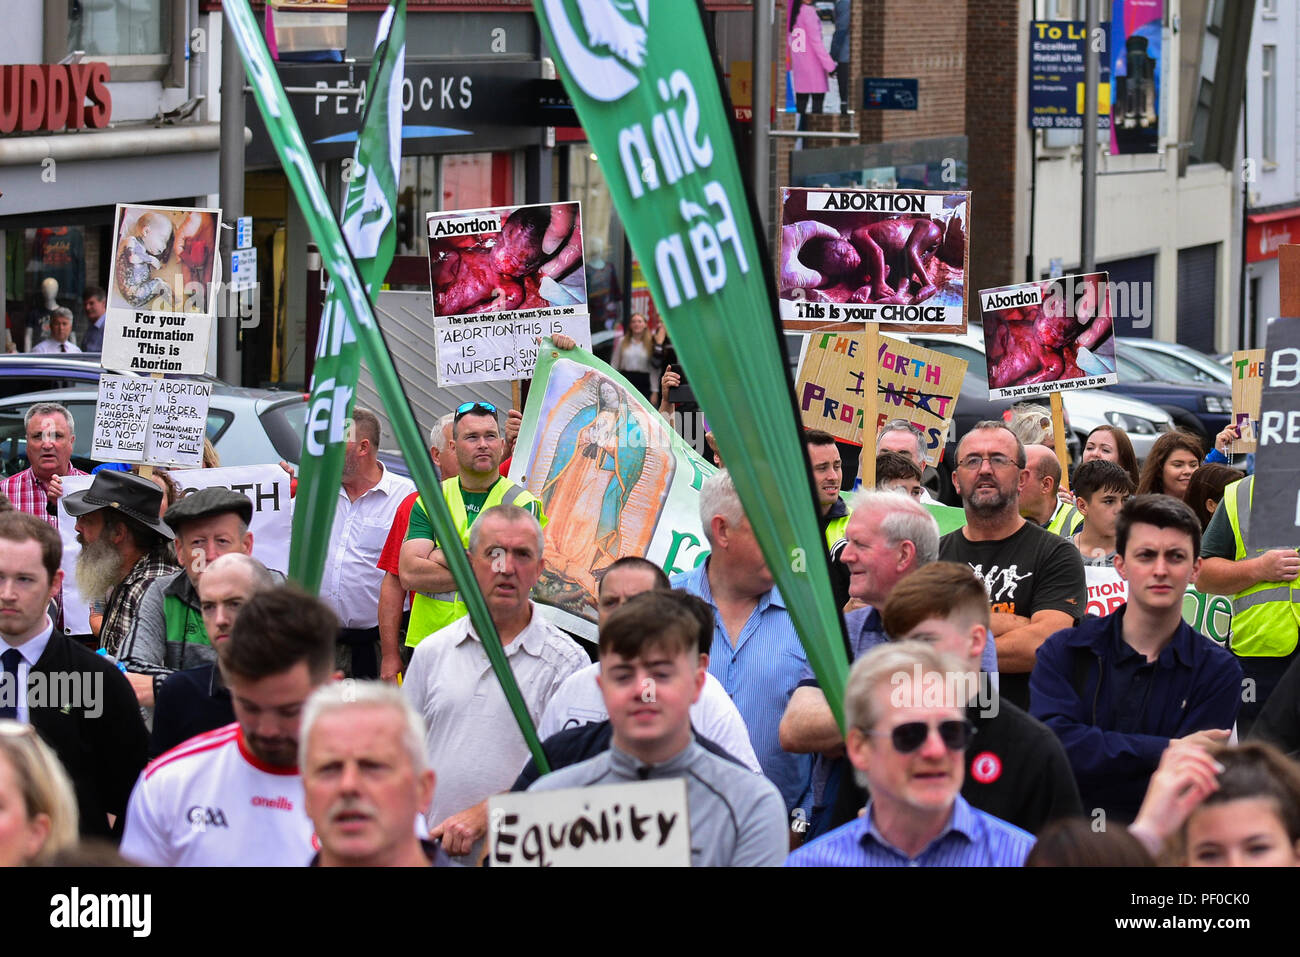 County Tyrone, UK. 18 August 2018. Sinn Féin Party Civil Rights Commemoration march 50 years on from the first march from Coalisland to Dungannon whilst a Pro Life counter protest and march takes place against Sinn Féin's policy on supporting Abortion.  Coalisland: County Tyrone: UK: 18th August 2018  Credit: Mark Winter/Alamy Live News - Stock Image